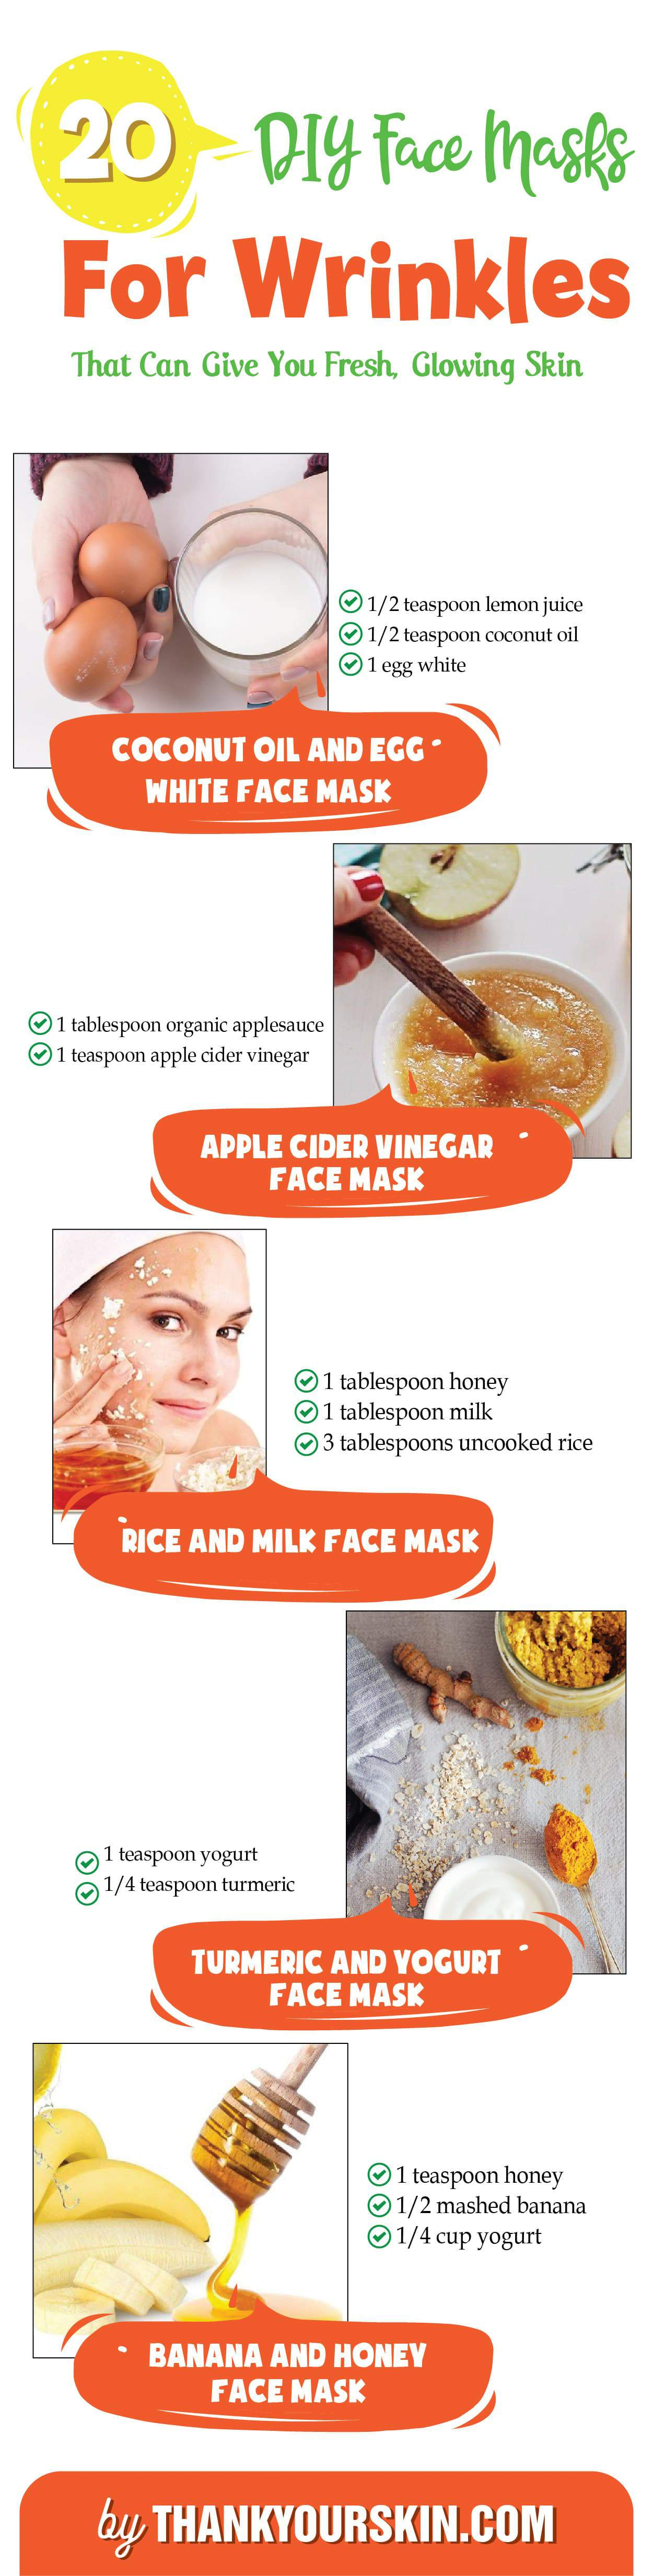 Fight Wrinkles Naturally With These 20 Amazing Diy Face Masks